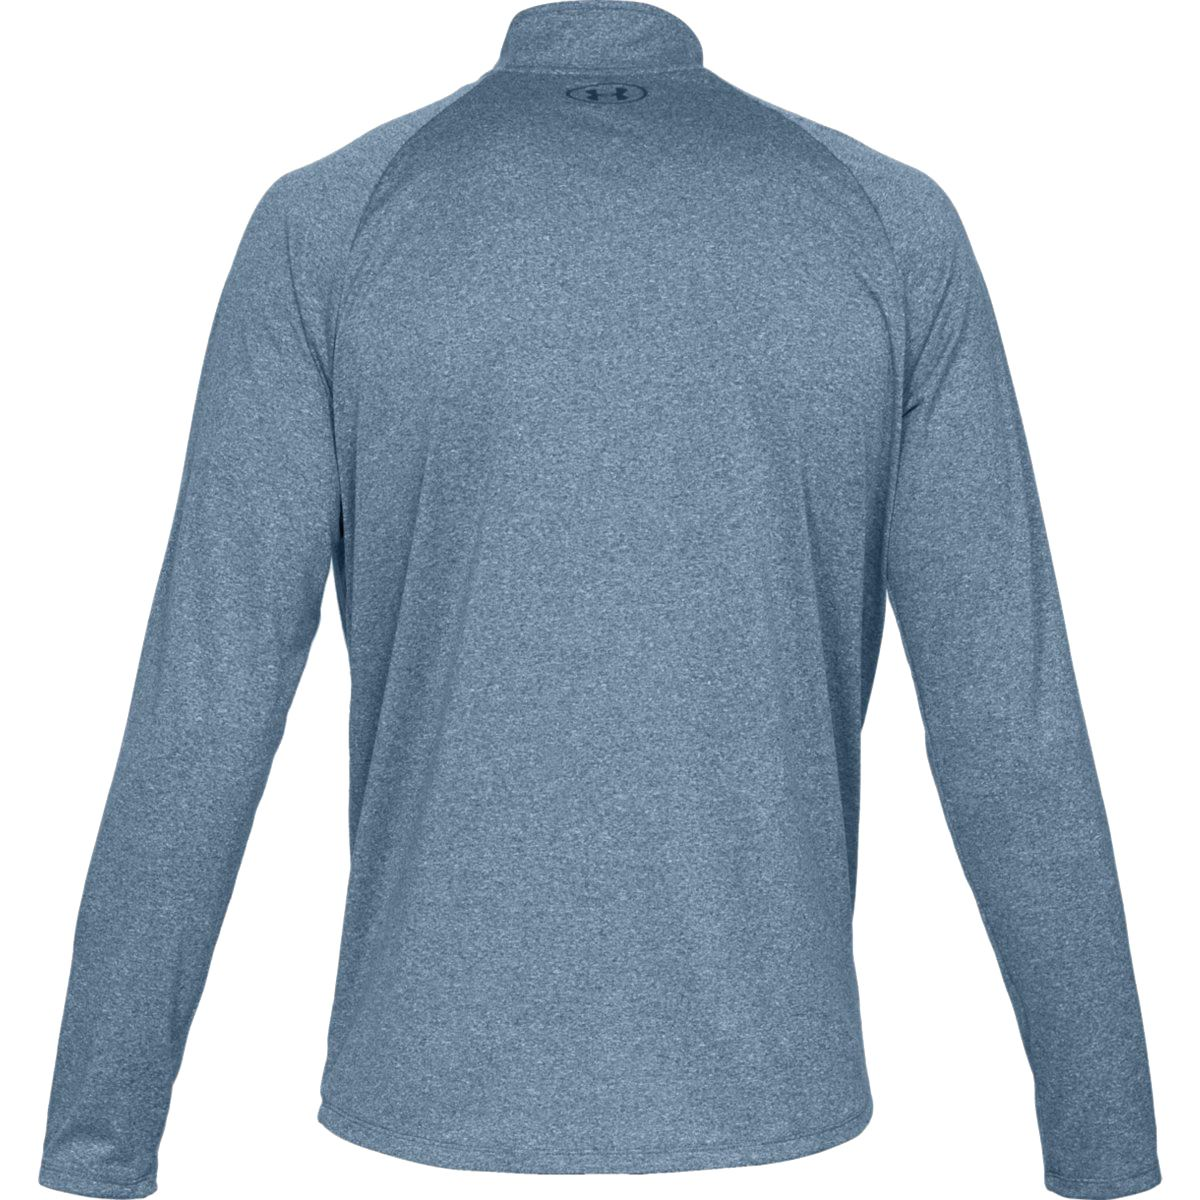 Under-Armour-Mens-2019-UA-Tech-1-2-Zip-Sweater-Mens-Training-Breathable-GYM-Top thumbnail 11